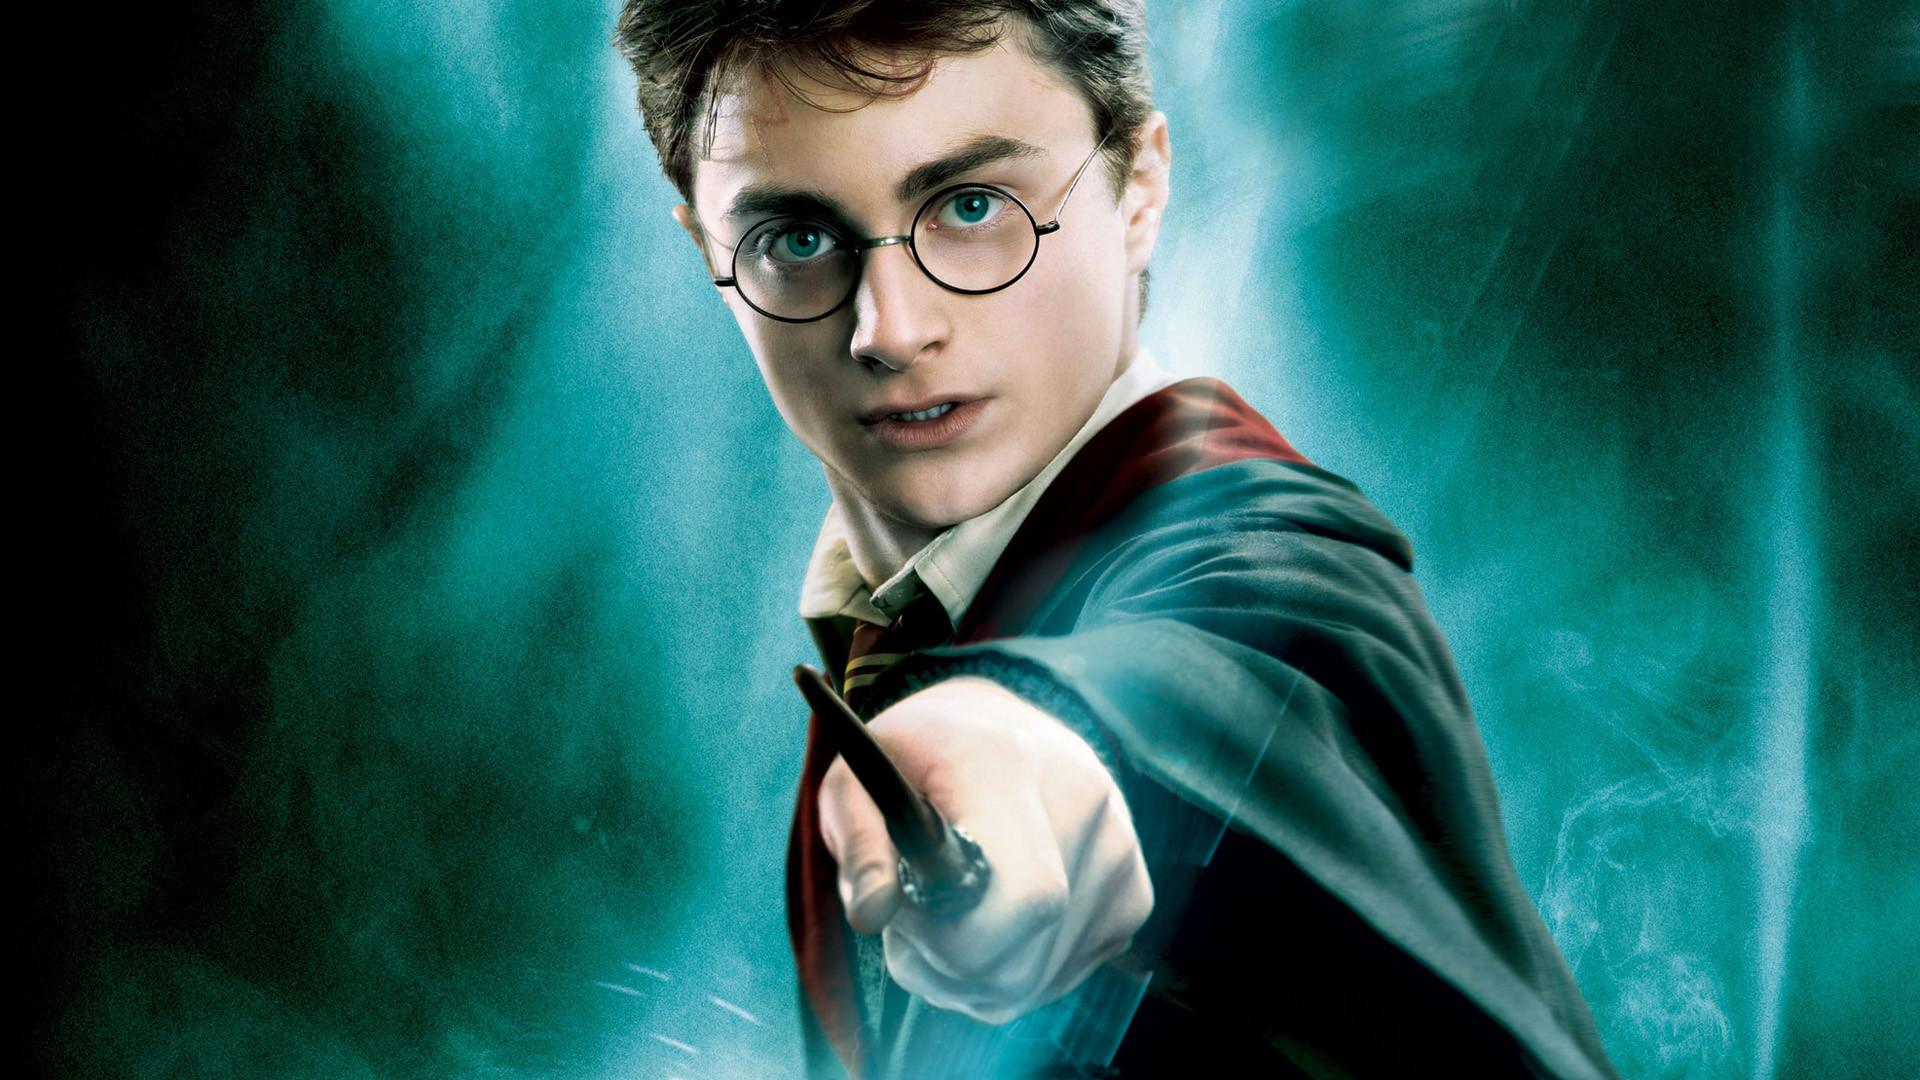 Incantesimi in Floridiana: la mostra dedicata al maghetto Harry Potter